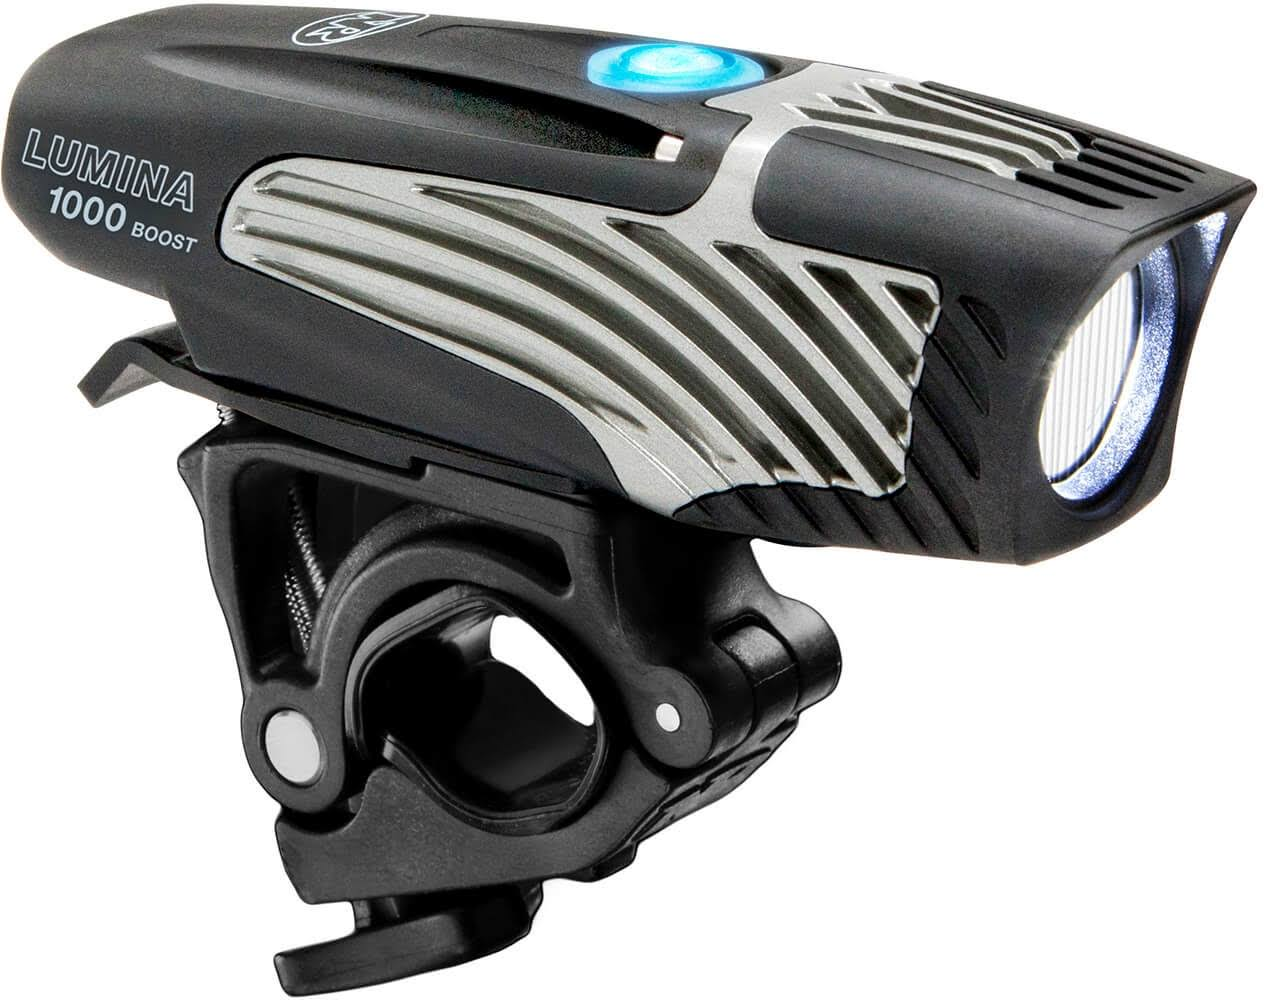 Lumina 1000 Boost Front Bike Light